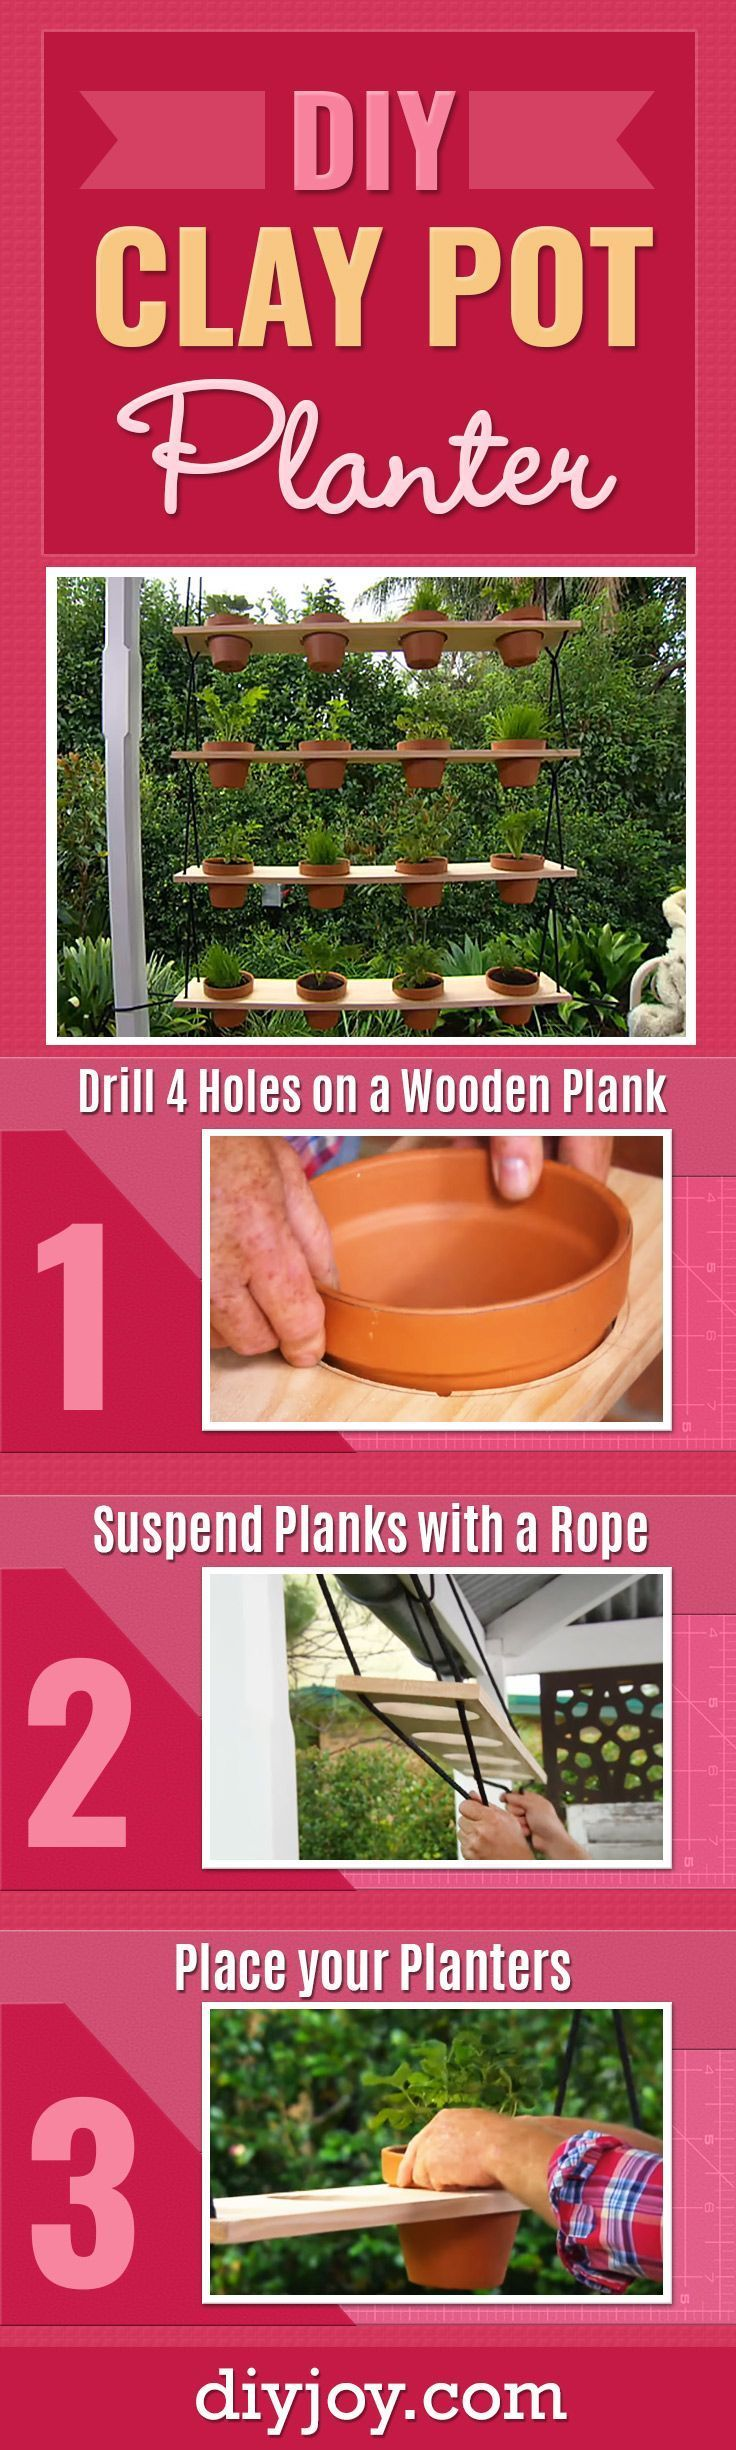 Genius planter idea to add something interesting to your backyard diy outdoors ideas do it yourself clay pot planter is an easy backyard project for solutioingenieria Images